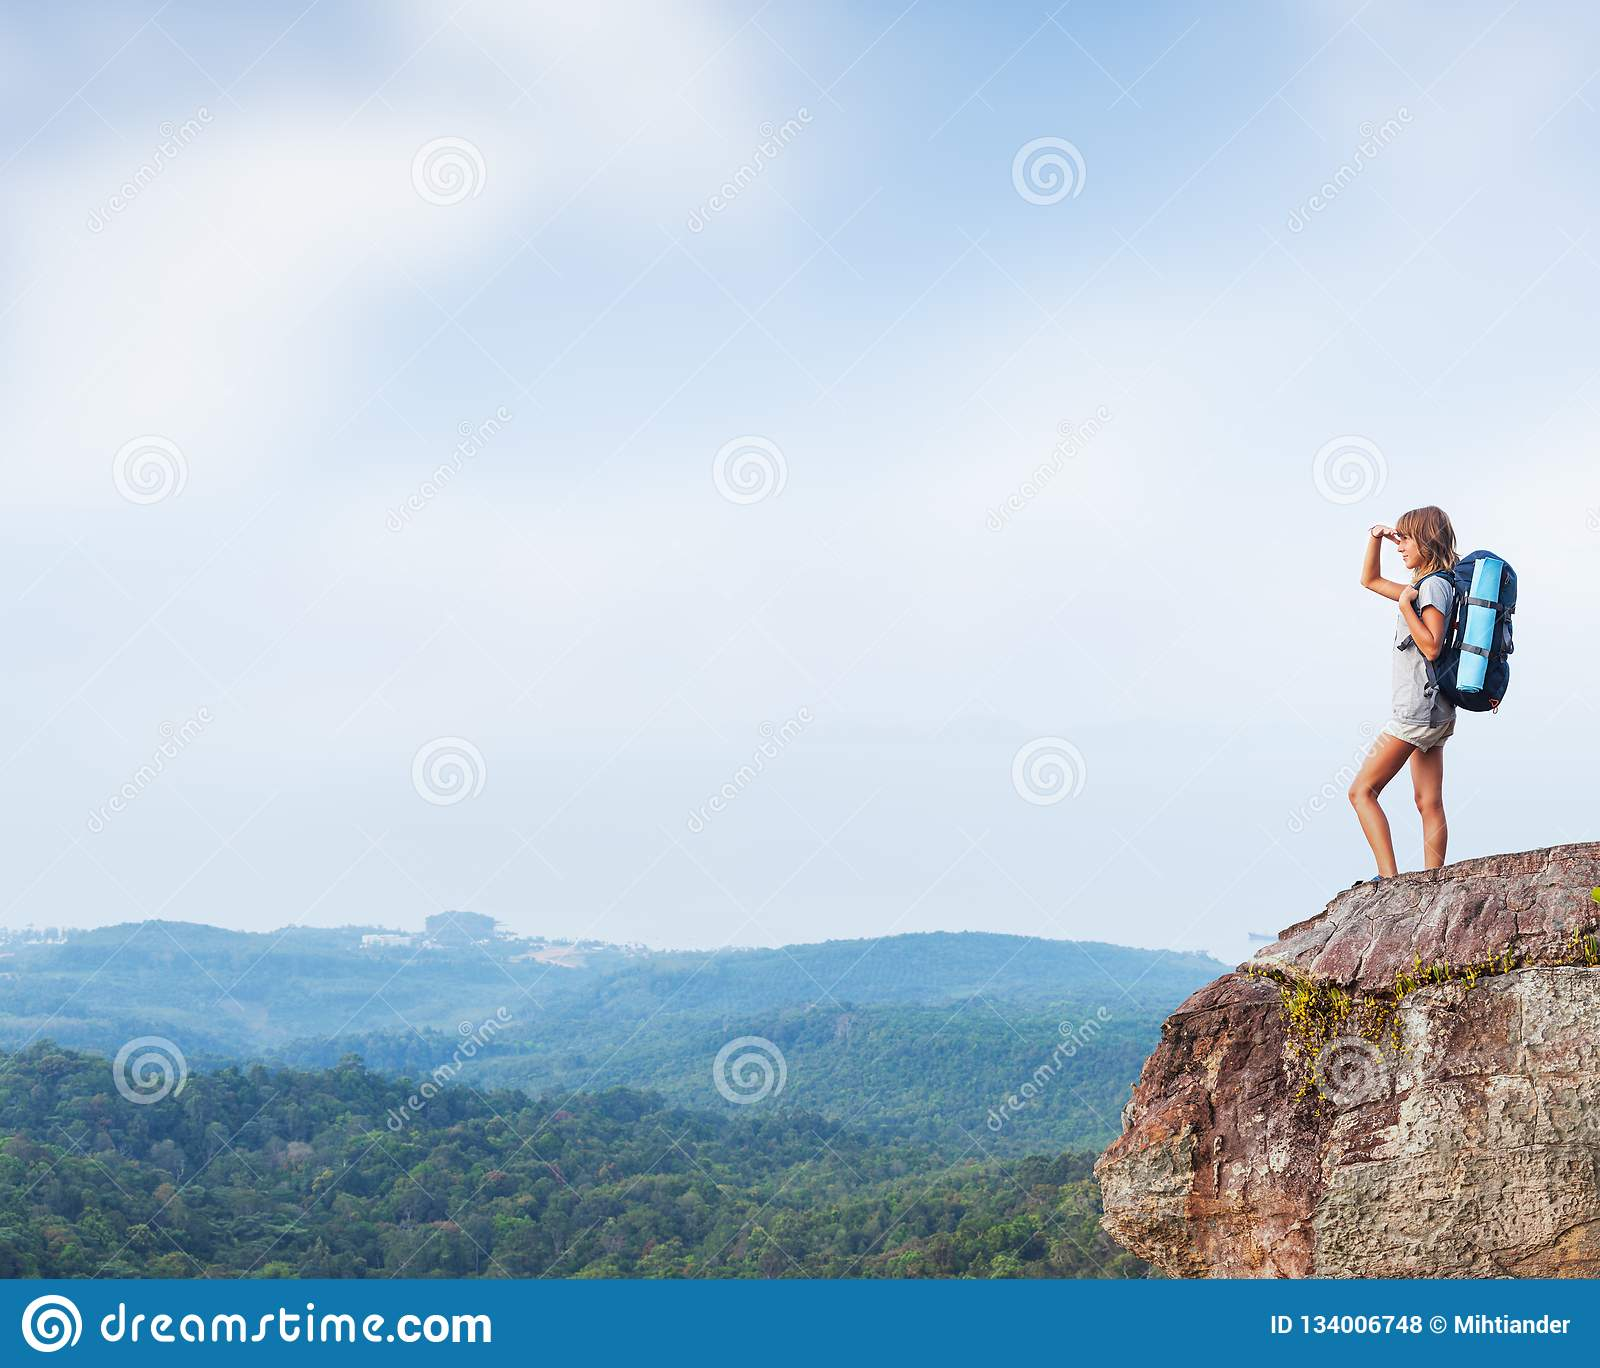 Young woman hiker